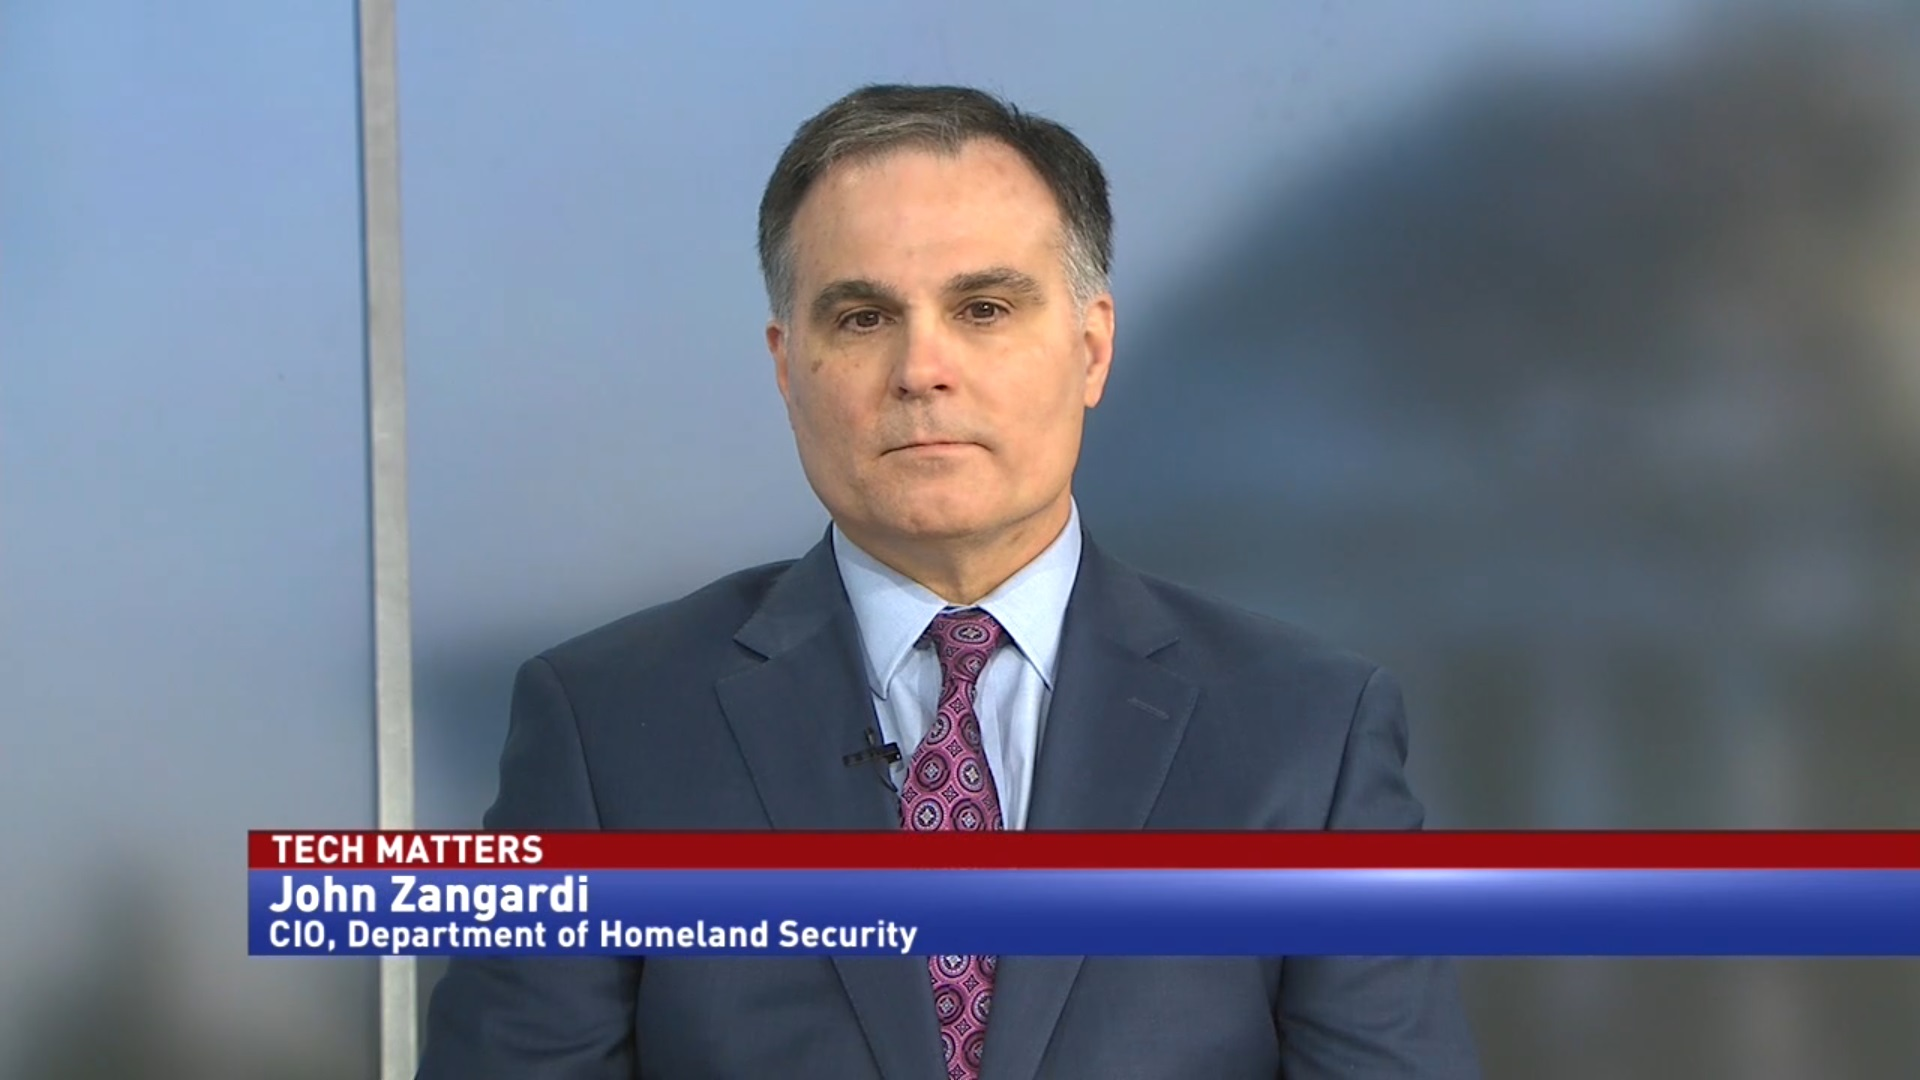 Breakdown of Dept. of Homeland Security's CIO strategic plan